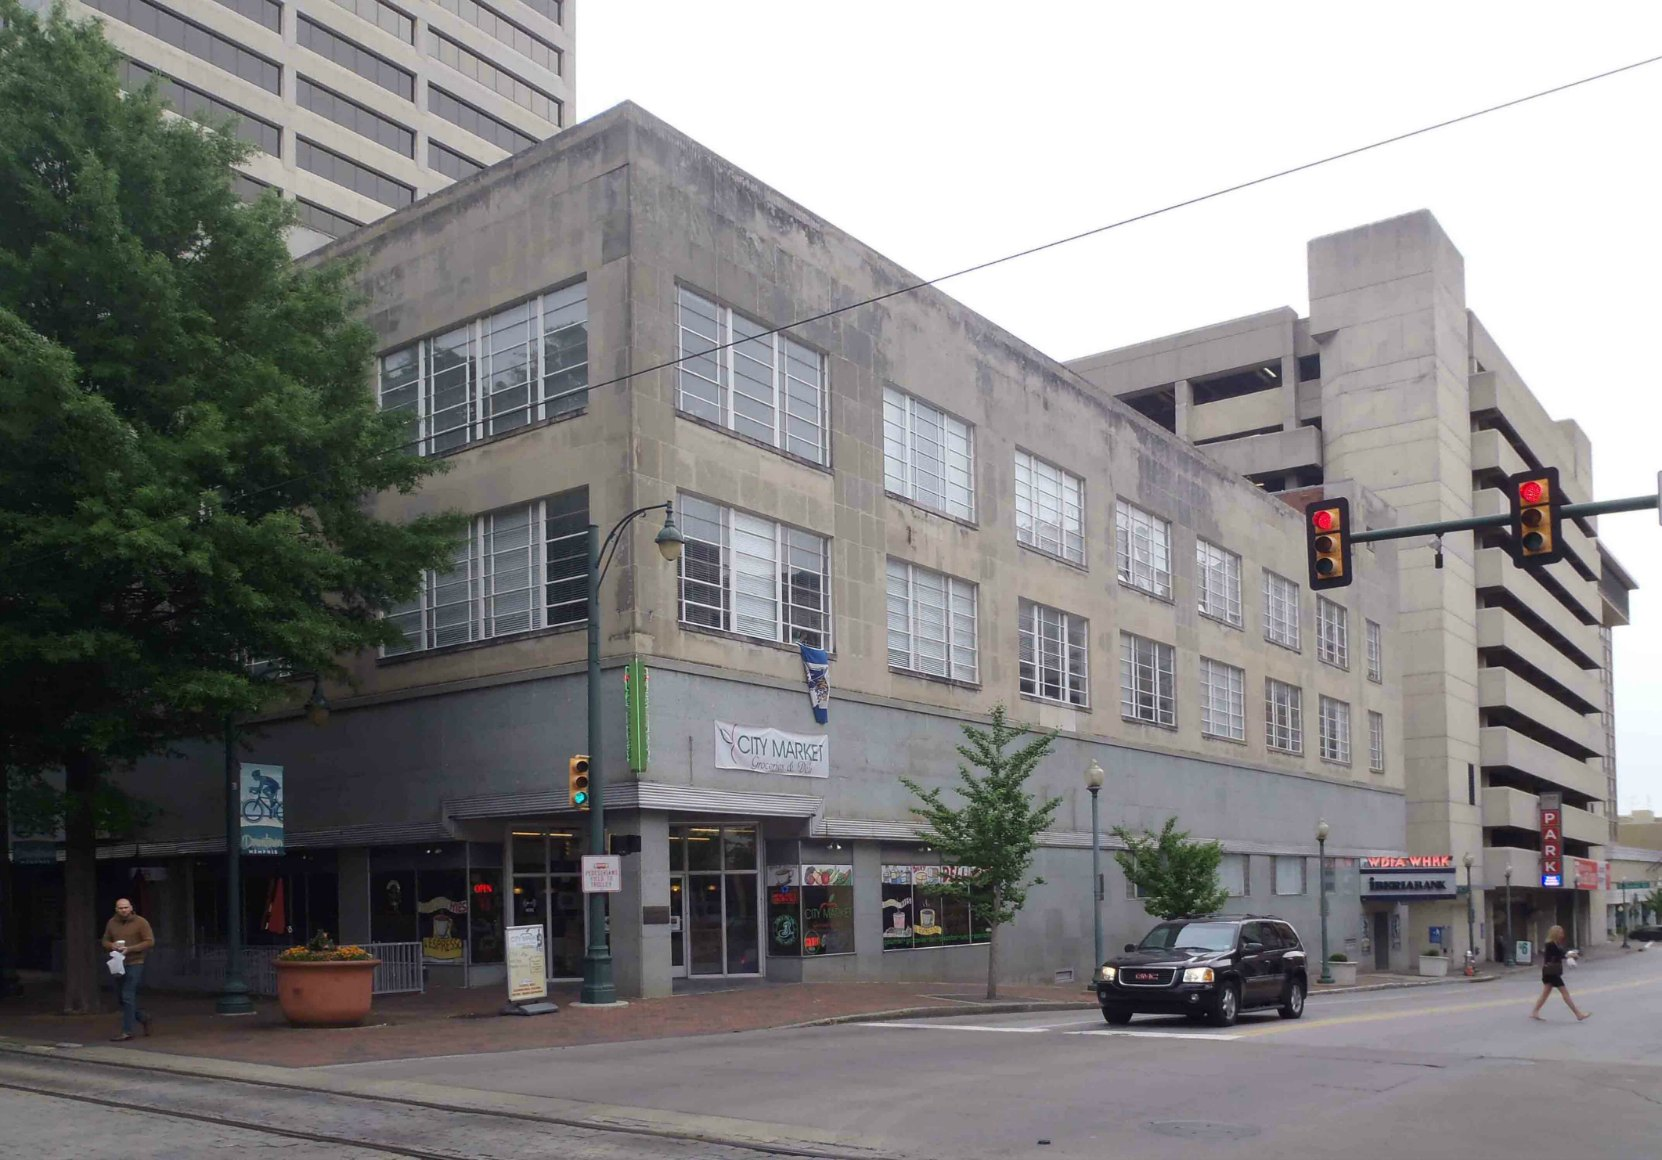 The WDIA radio station is in this building on Union Avenue in downtown Memphis, Tennessee